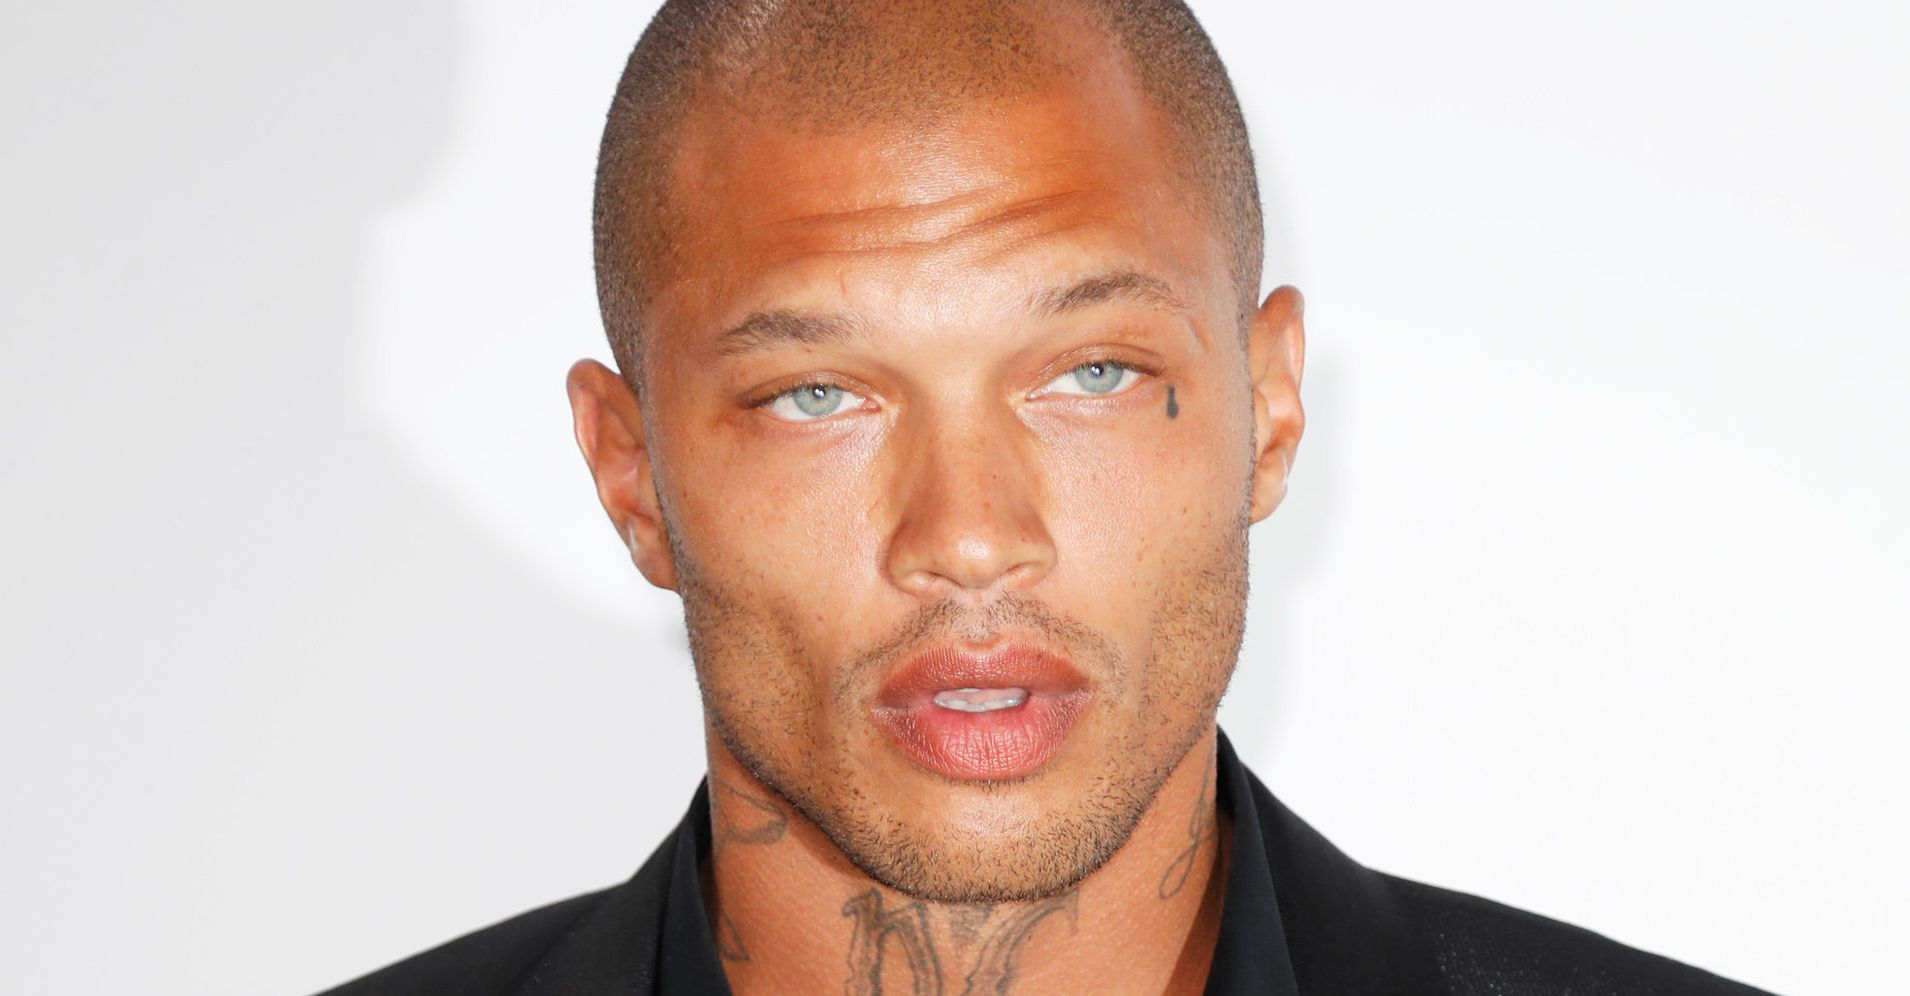 Hot Convict Jeremy Meeks Hangs With Nicki Minaj At Amfar